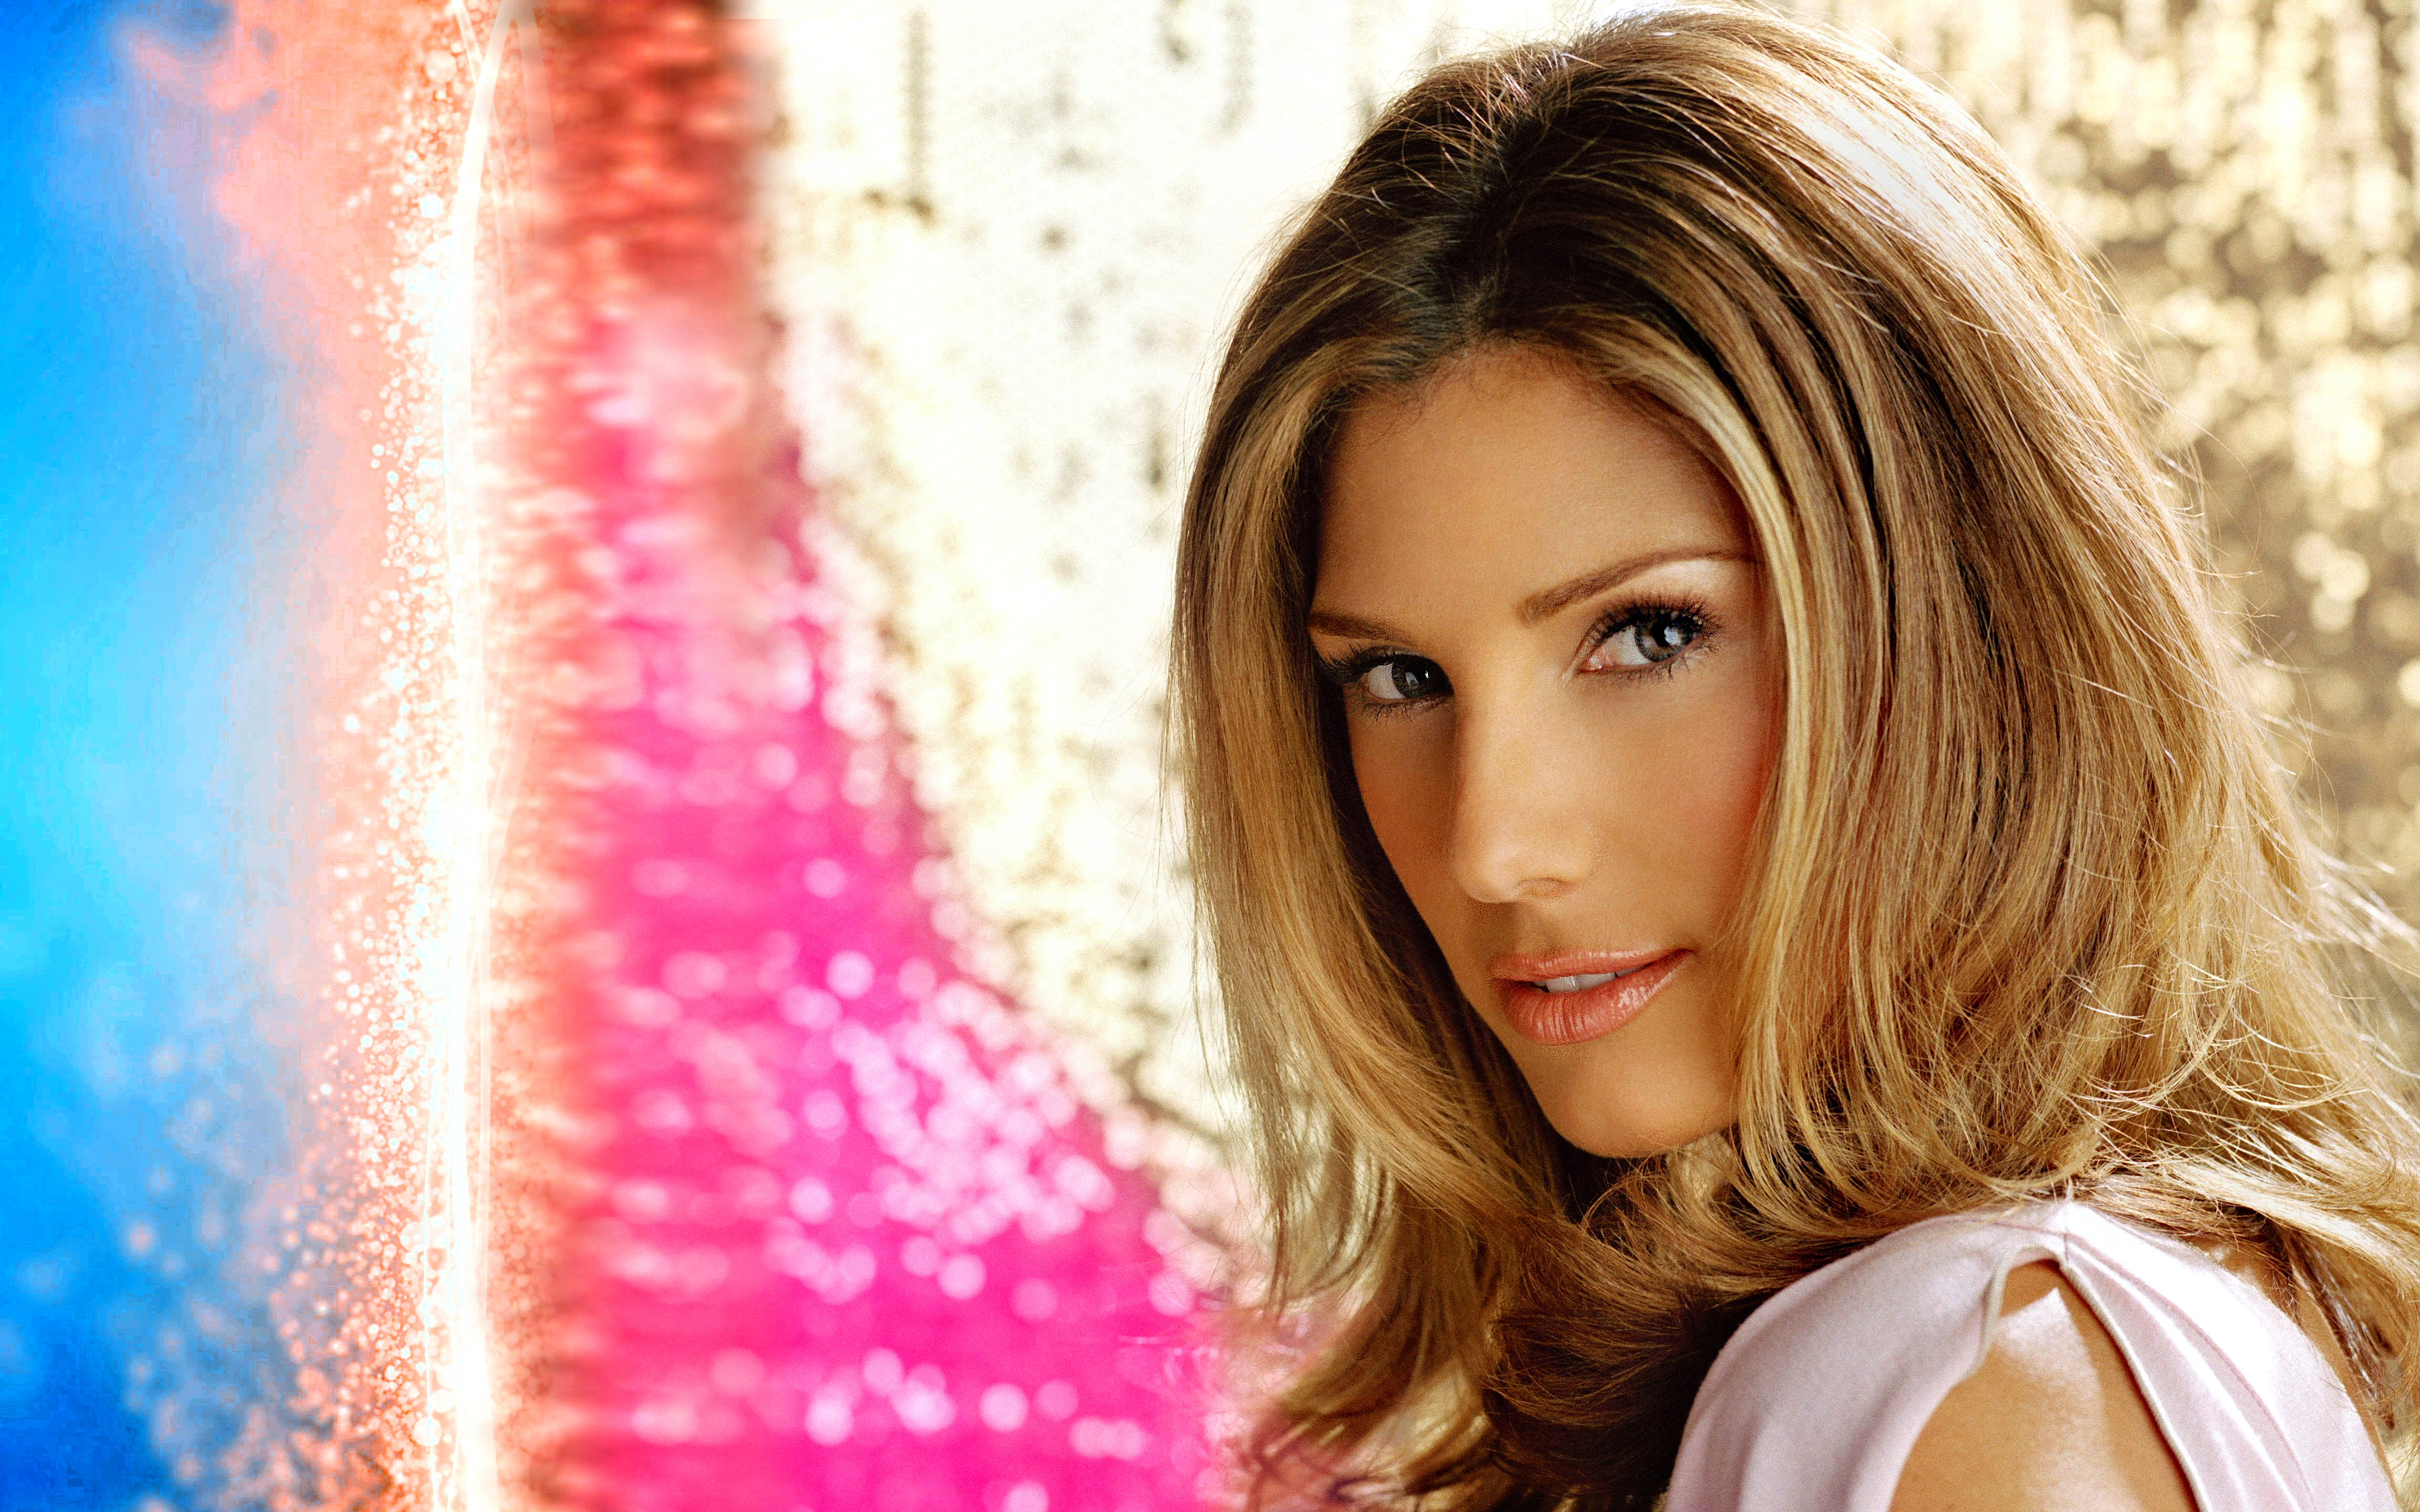 4608x2880 - Daisy Fuentes Wallpapers 3